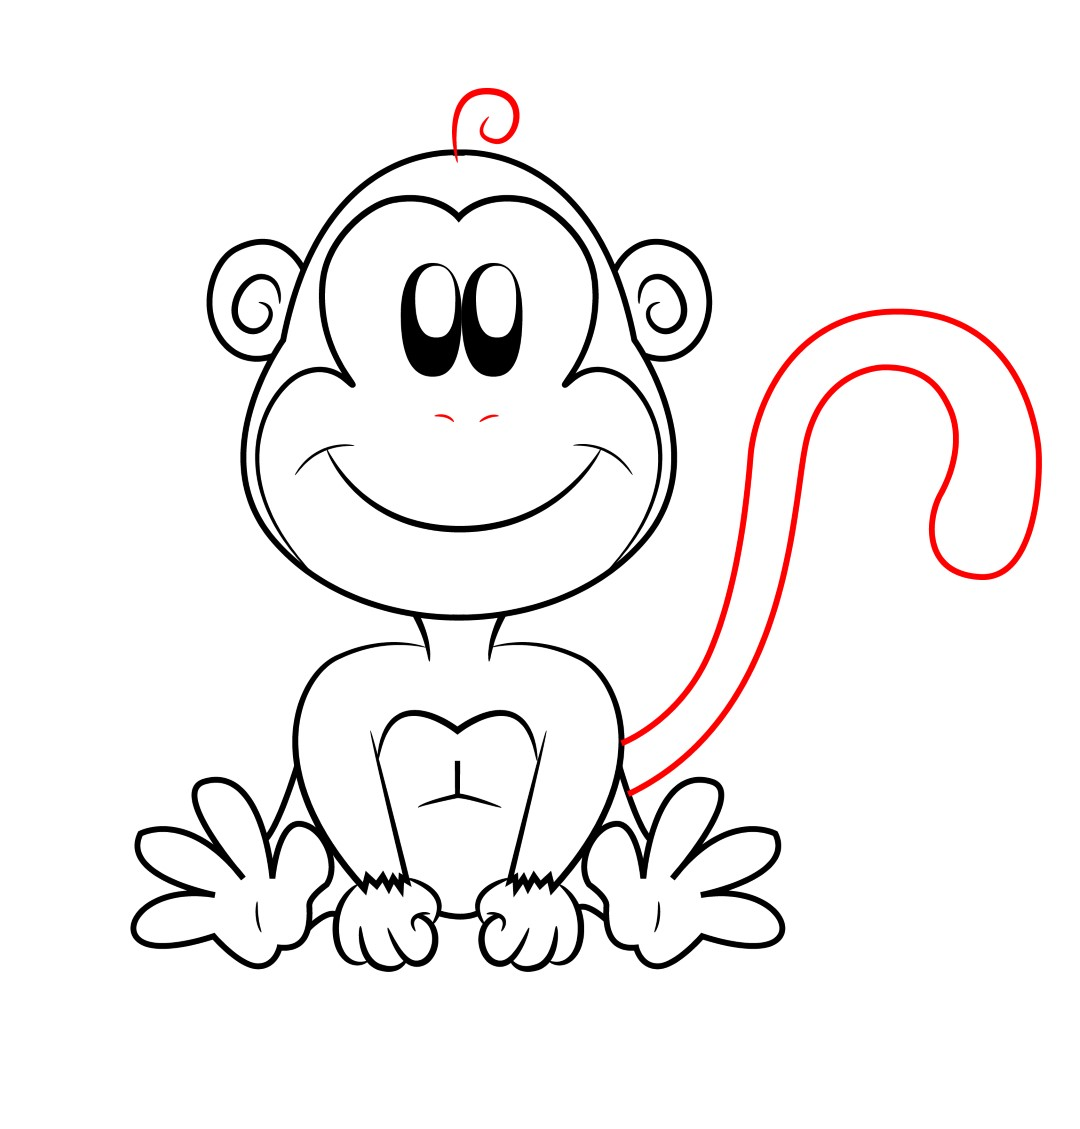 Free Monkey Cartoon Drawings Download Free Clip Art Free Clip Art On Clipart Library